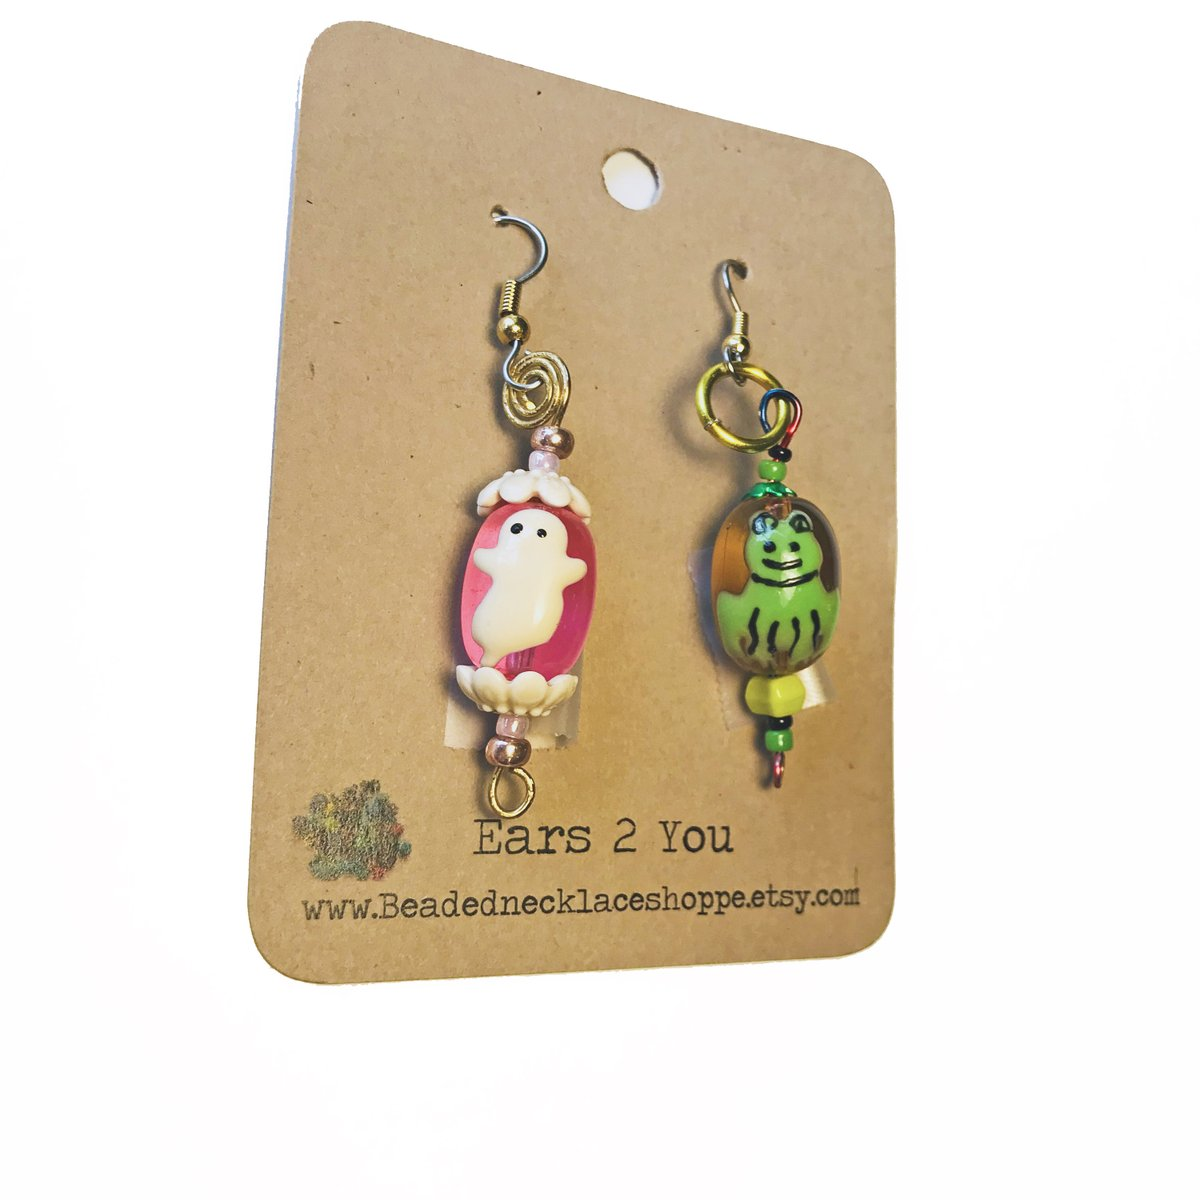 Excited to share the latest addition to my #etsy shop: Halloween earrings, Pink Or Green Ghost earrings, Glass earrings with painted ghosts, wire wrapped findings, Gift Idea for Halloween Parties https://t.co/FsdjlKjtor #women #earlobe #gothic #glass #no #green #fantas https://t.co/LcSgFbswQ5